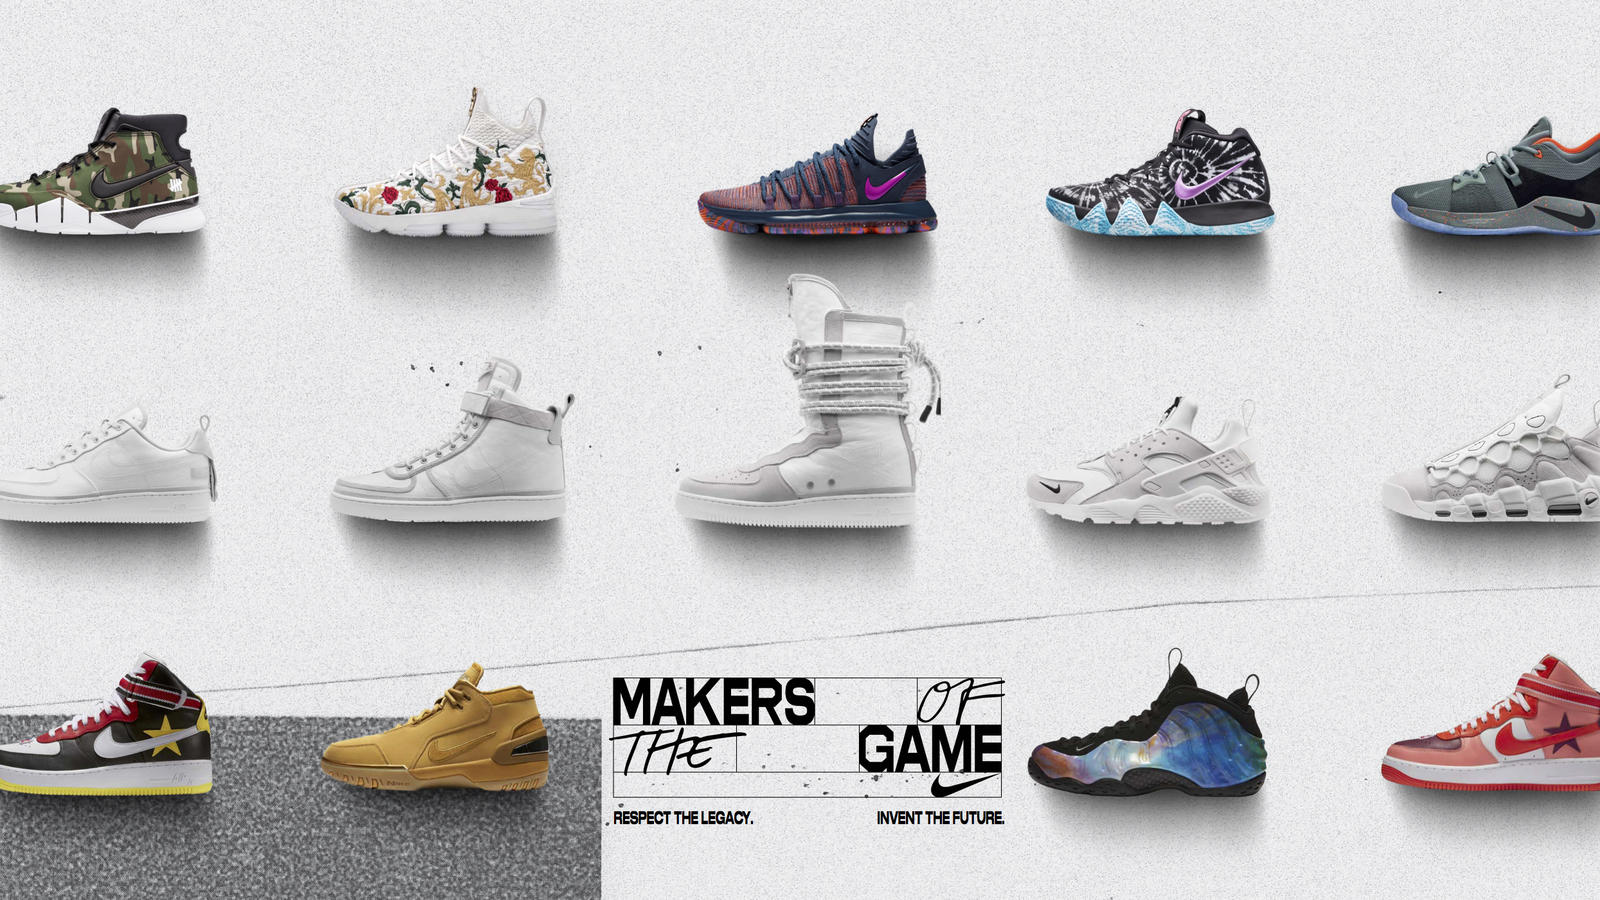 Nike's 2018 NBA All-Star Line Up 0